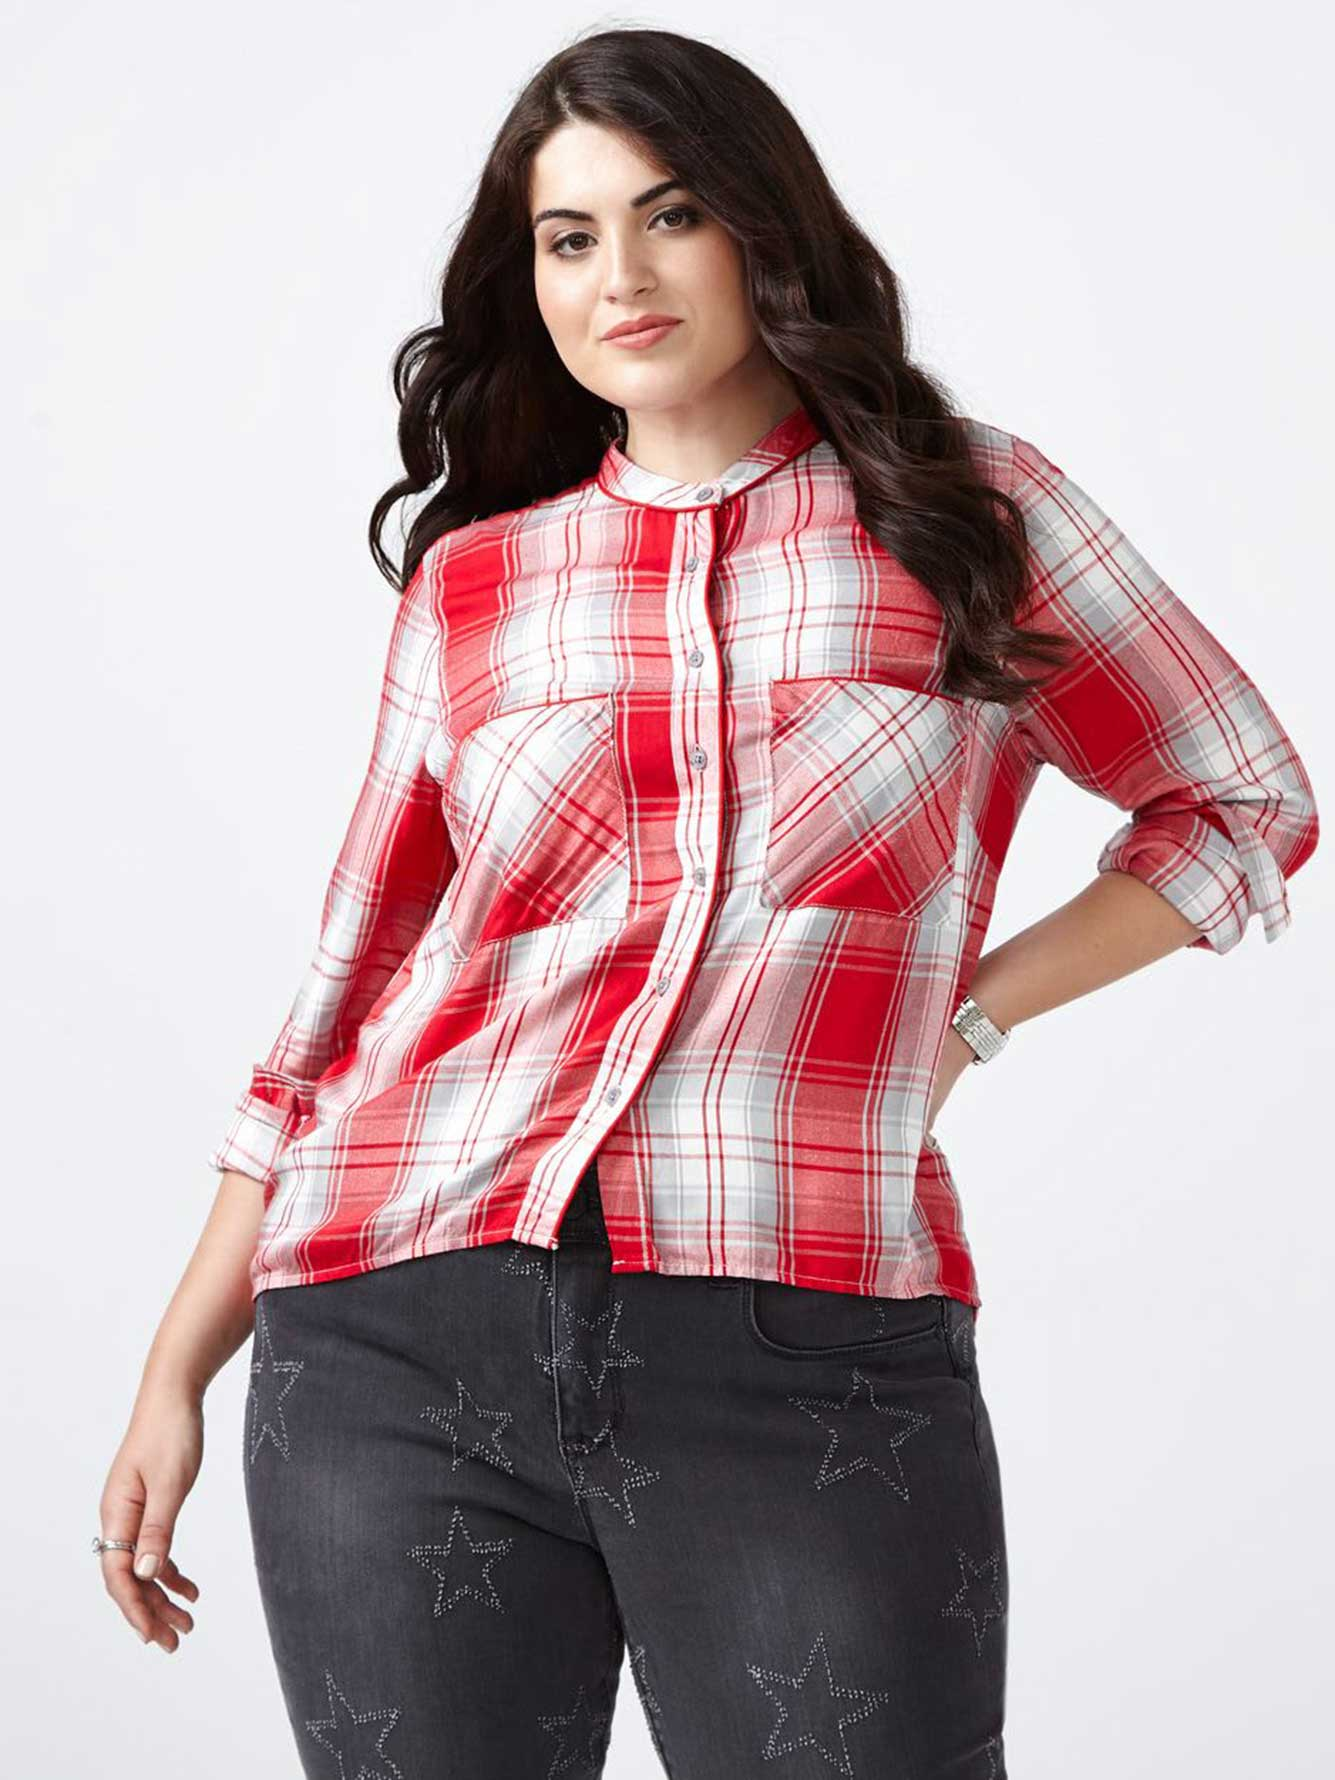 Melissa Mccarthy Long Sleeve Plaid Shirt Penningtons